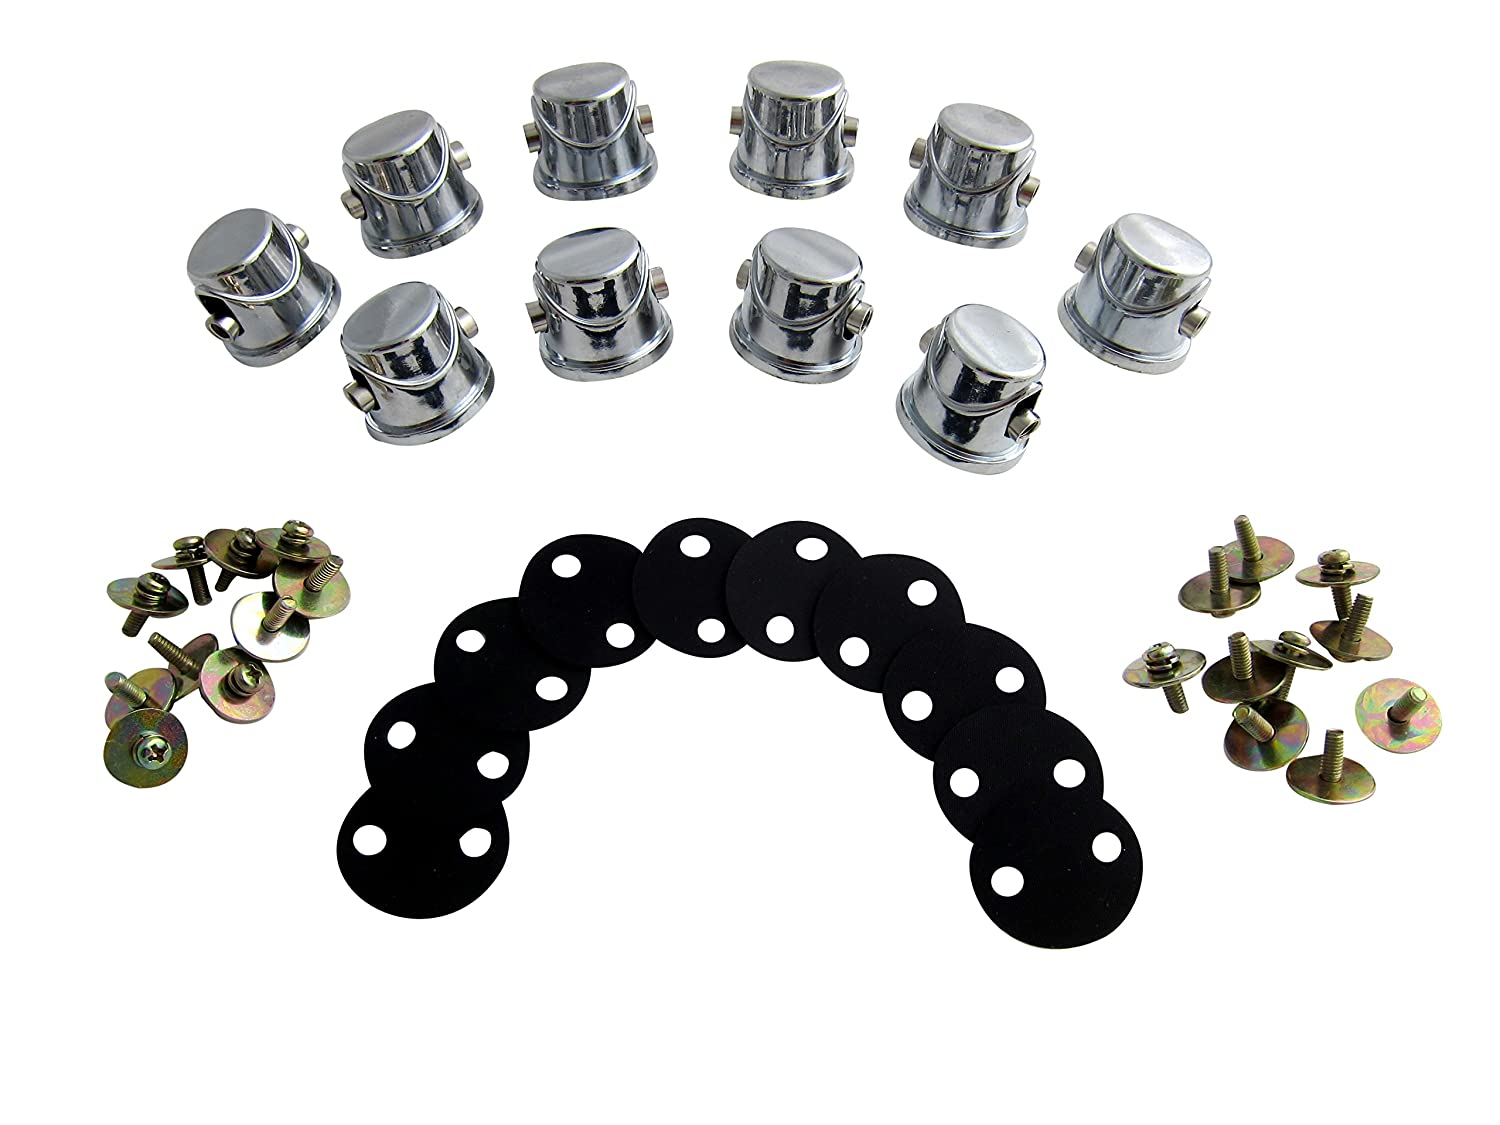 Goedrum 10 Double End Tom / Snare Drum Lugs with Gaskets Screws for 7~11mm Drum Shell Goe-9574